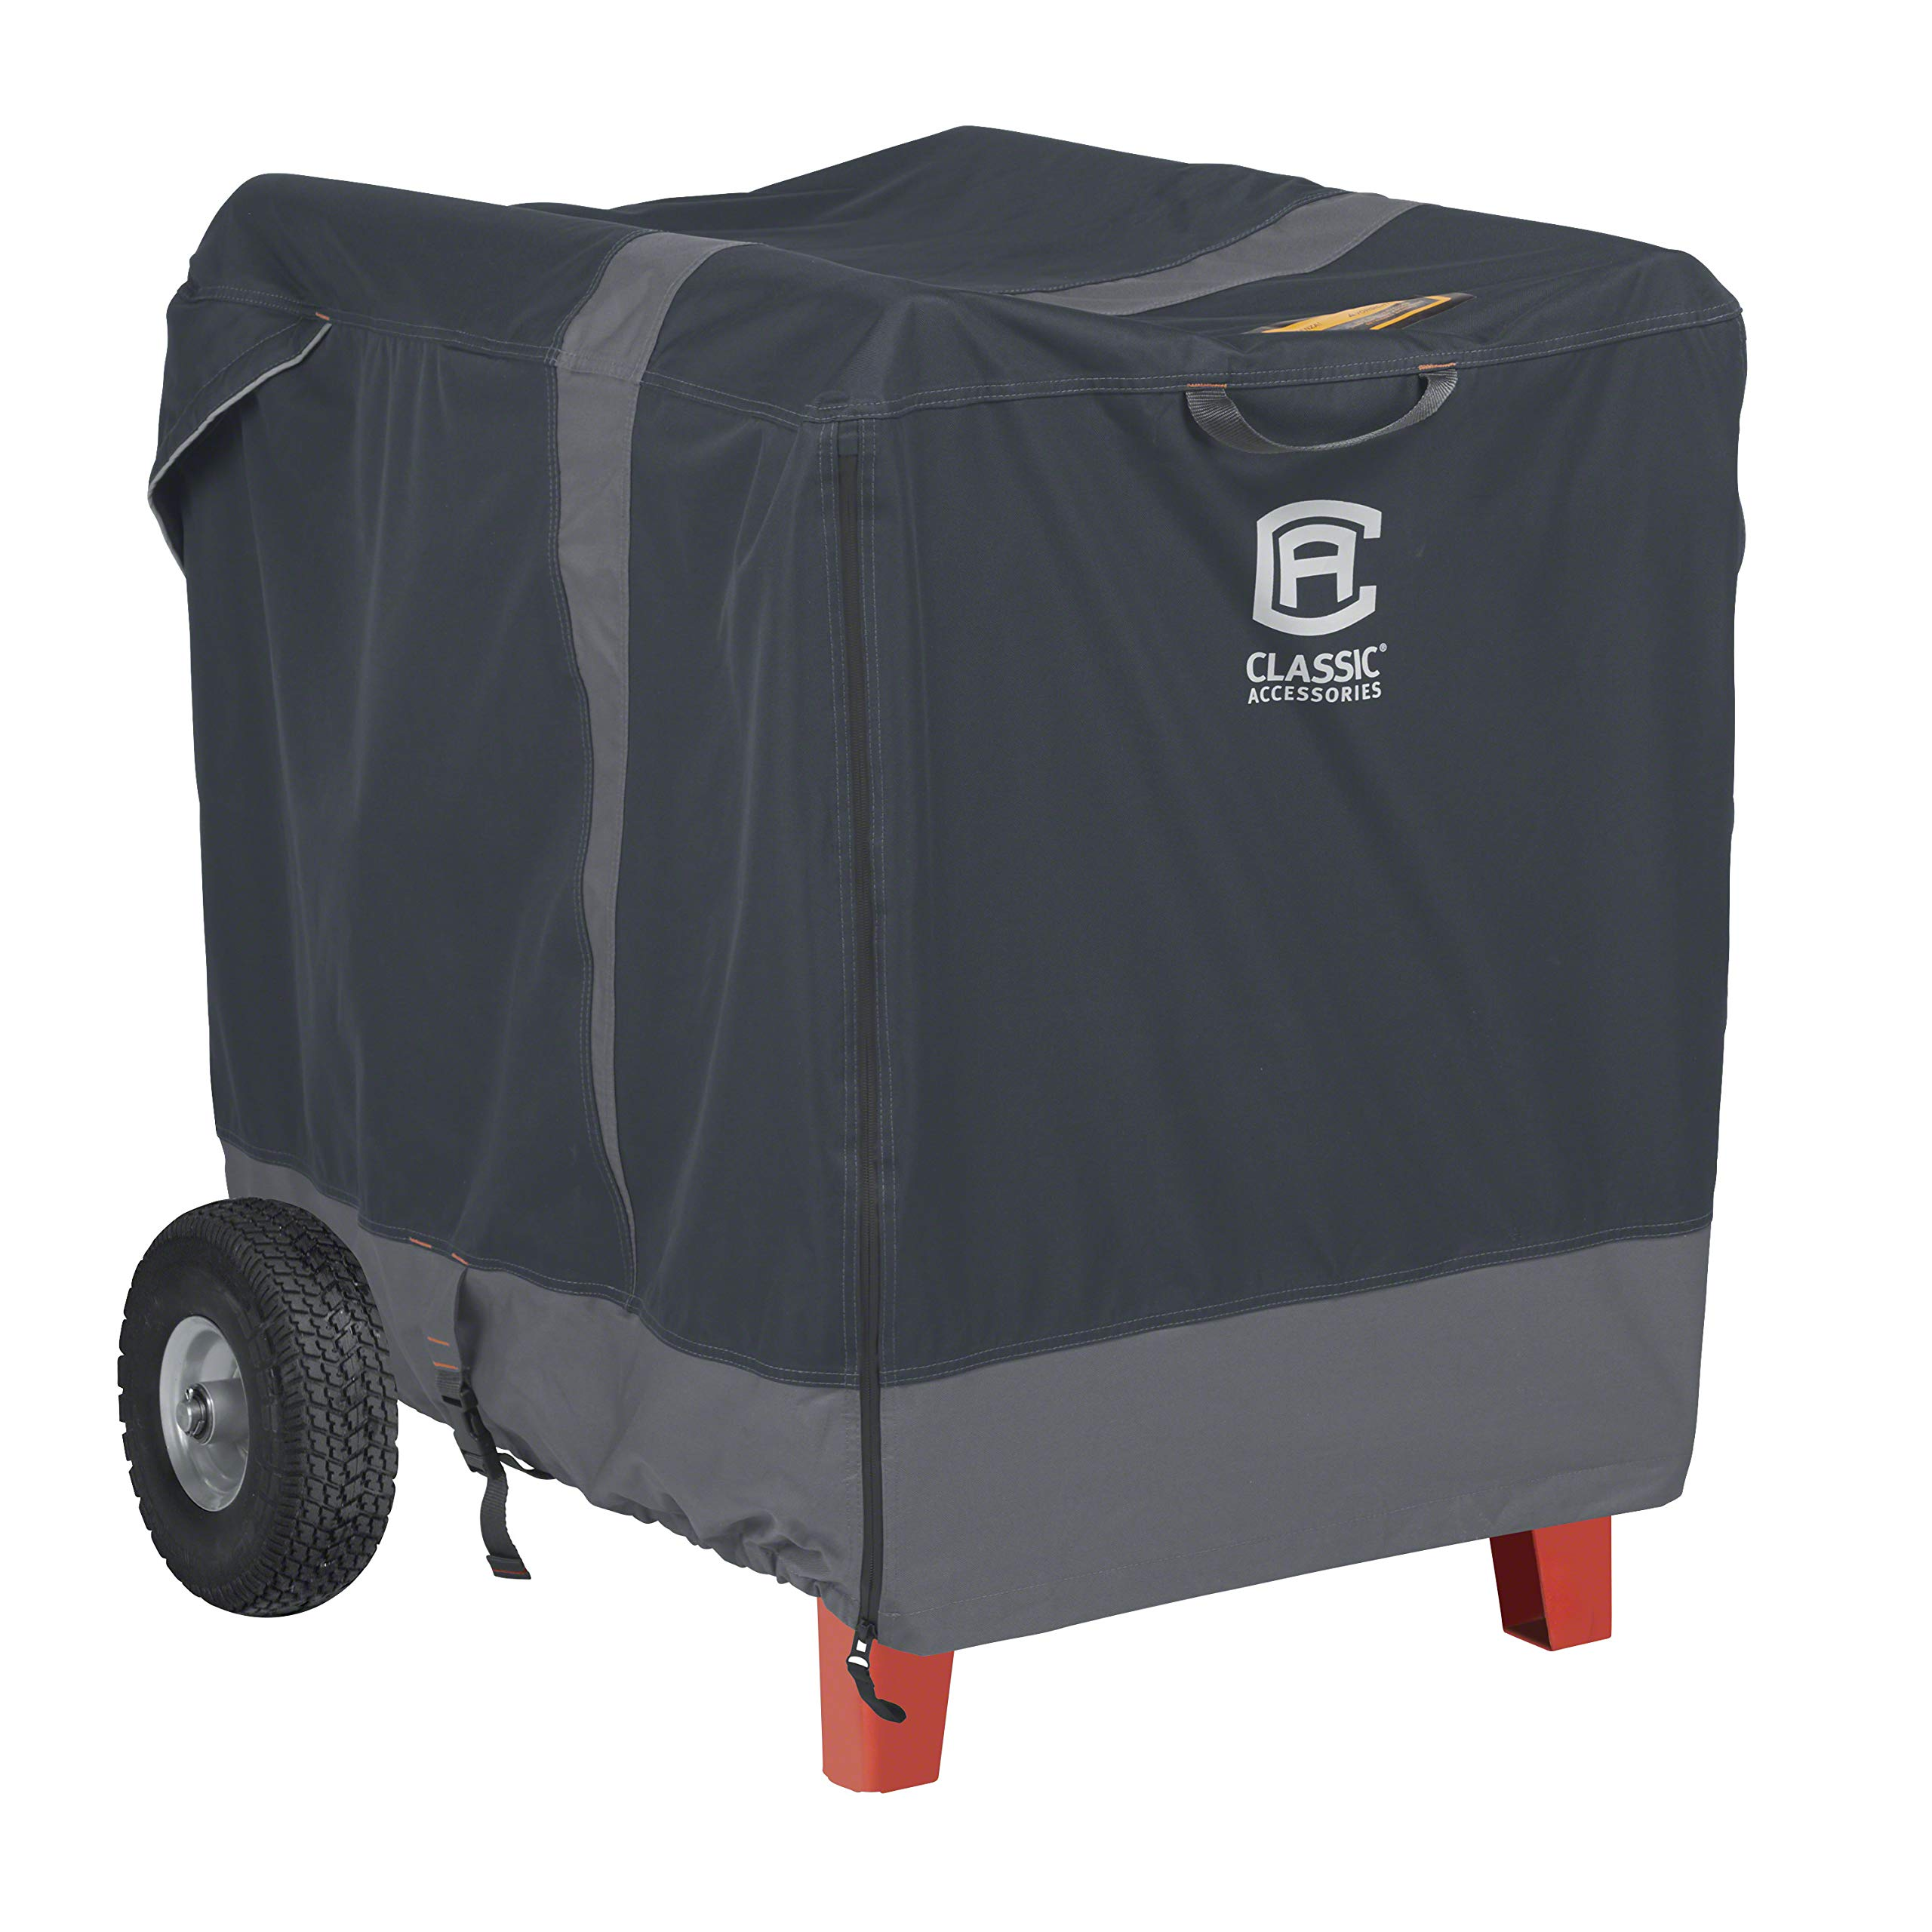 Classic Accessories StormPro RainProof Heavy Duty Generator Cover, XX-Large by Classic Accessories